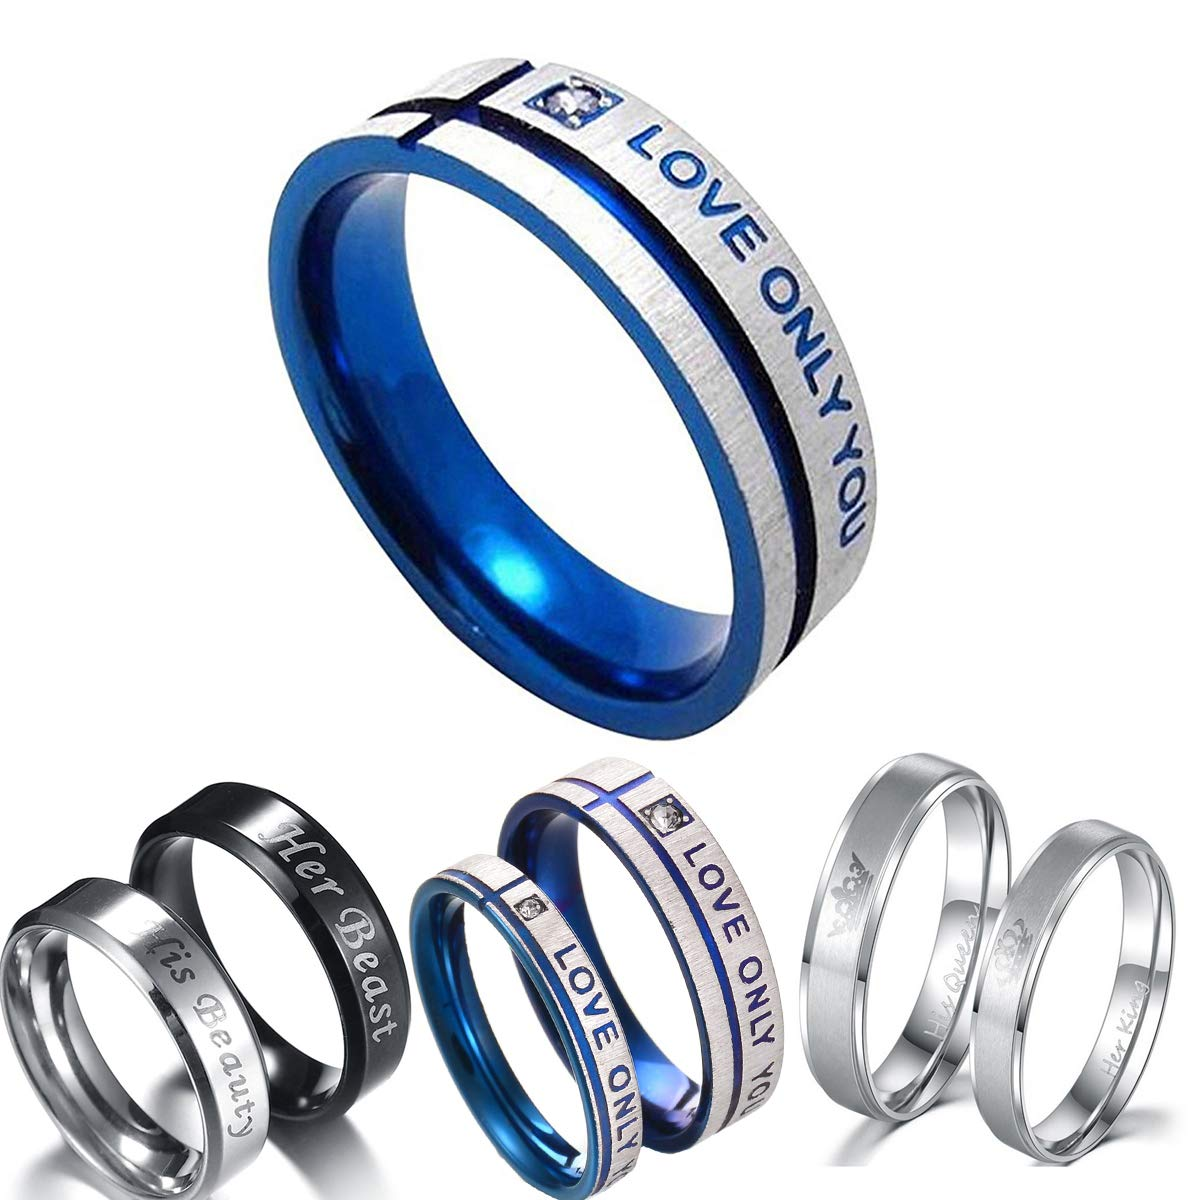 c353c90406bf3 Hsumonre Couples Rings Engraved Her King His Queen Matching Men Promise  Ring Crown Stainless Steel Valentine Gift